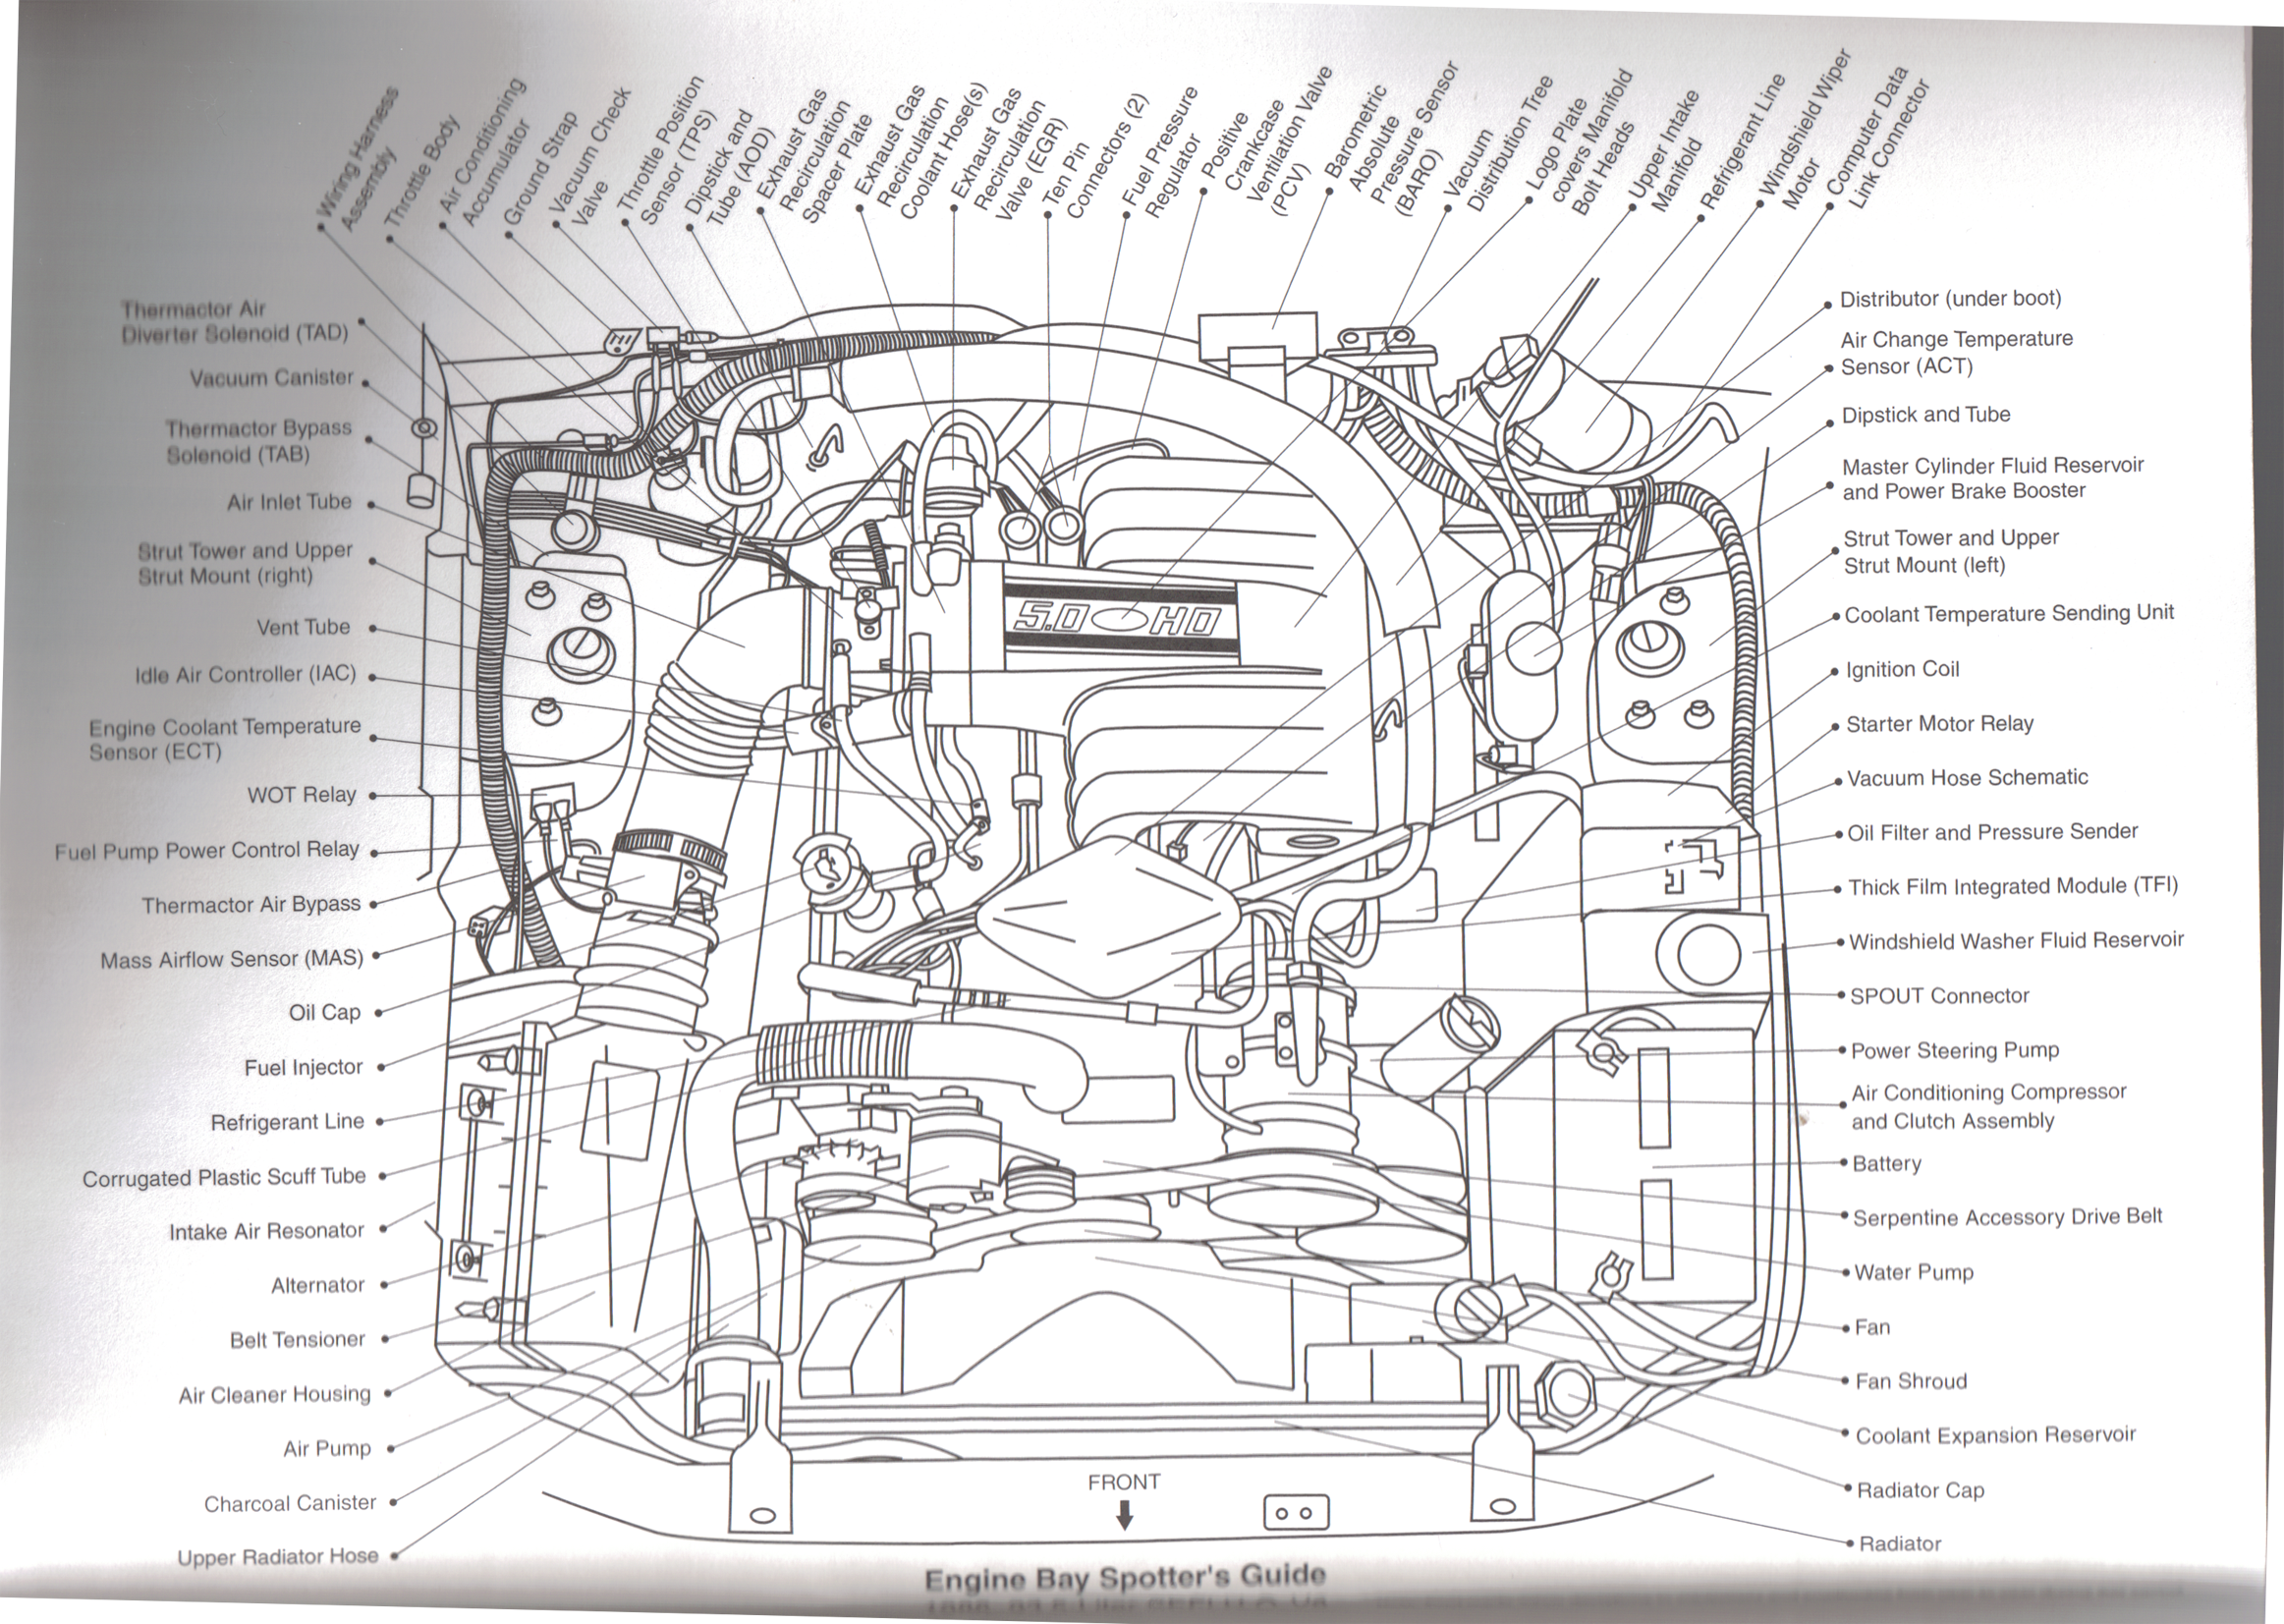 1986 Mustang Engine Wiring Diagram Just Another Blog 1987 Radio Everything You Need To Know About 1979 1993 Foxbody Mustangs Rh Americanmuscle Com Power Window